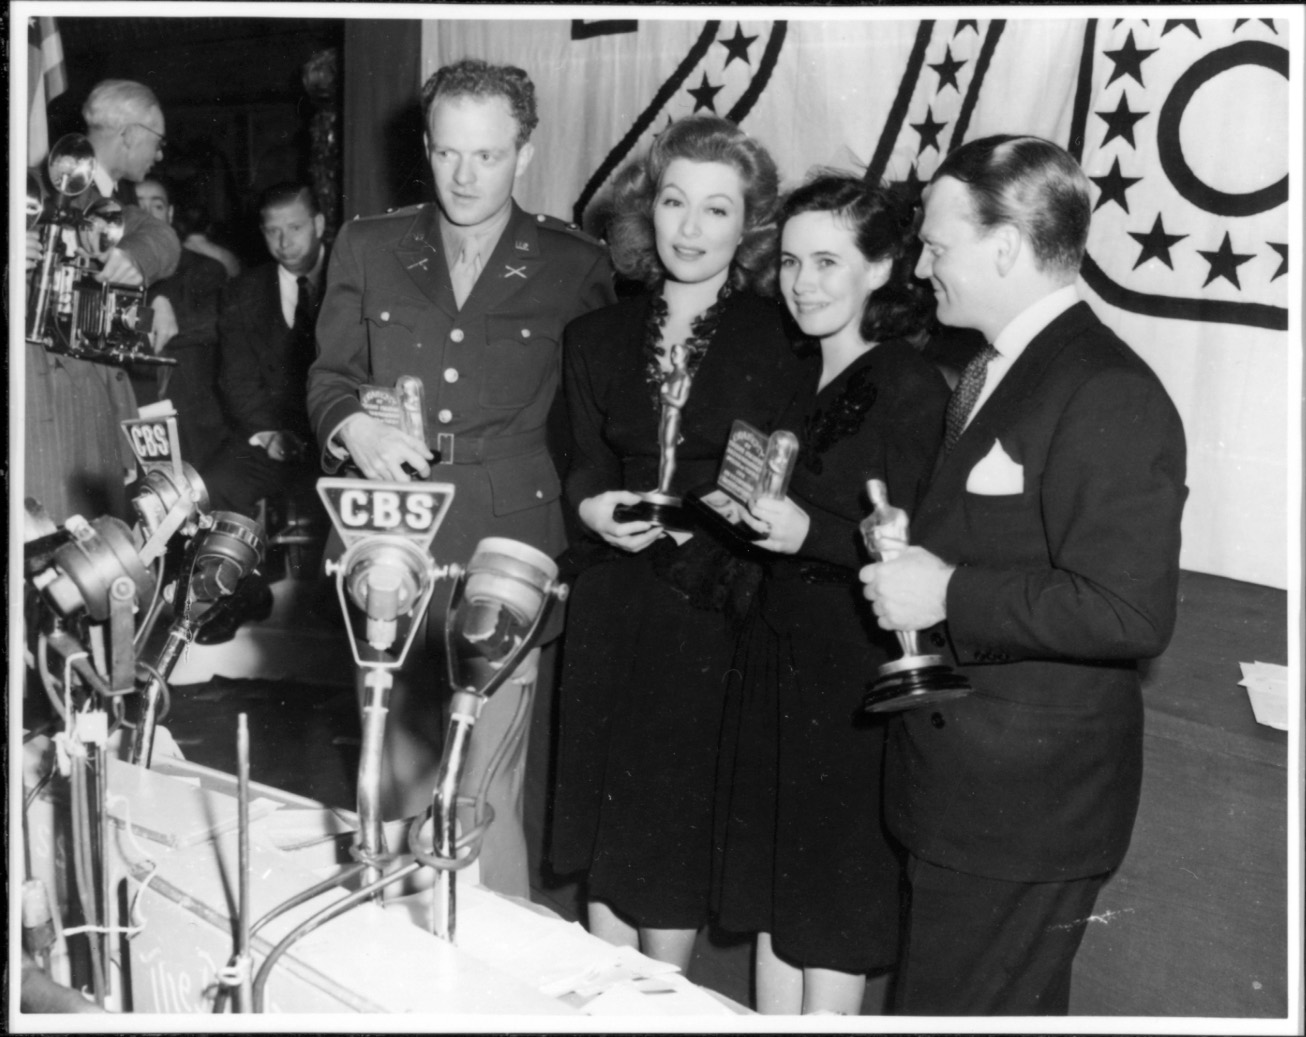 1942 Oscar ceremony photo